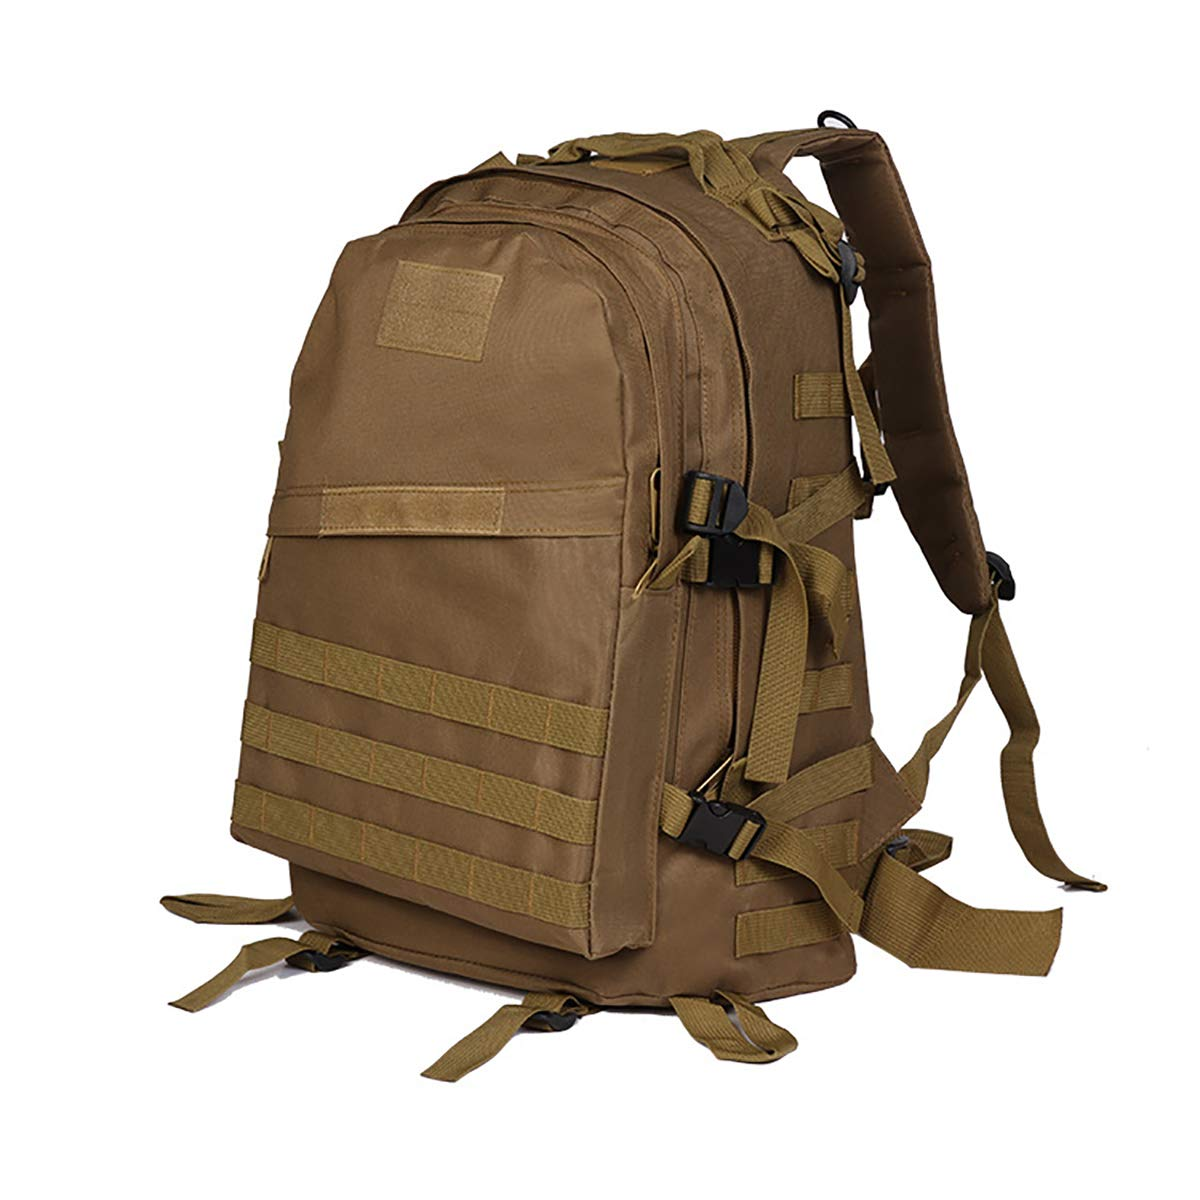 Amazon.com : ZUZEN Outdoor Sport Military Tactical Climbing Mountaineering Backpack Camping Hiking Backpack Travel Outdoor Bag, A : Sports & Outdoors